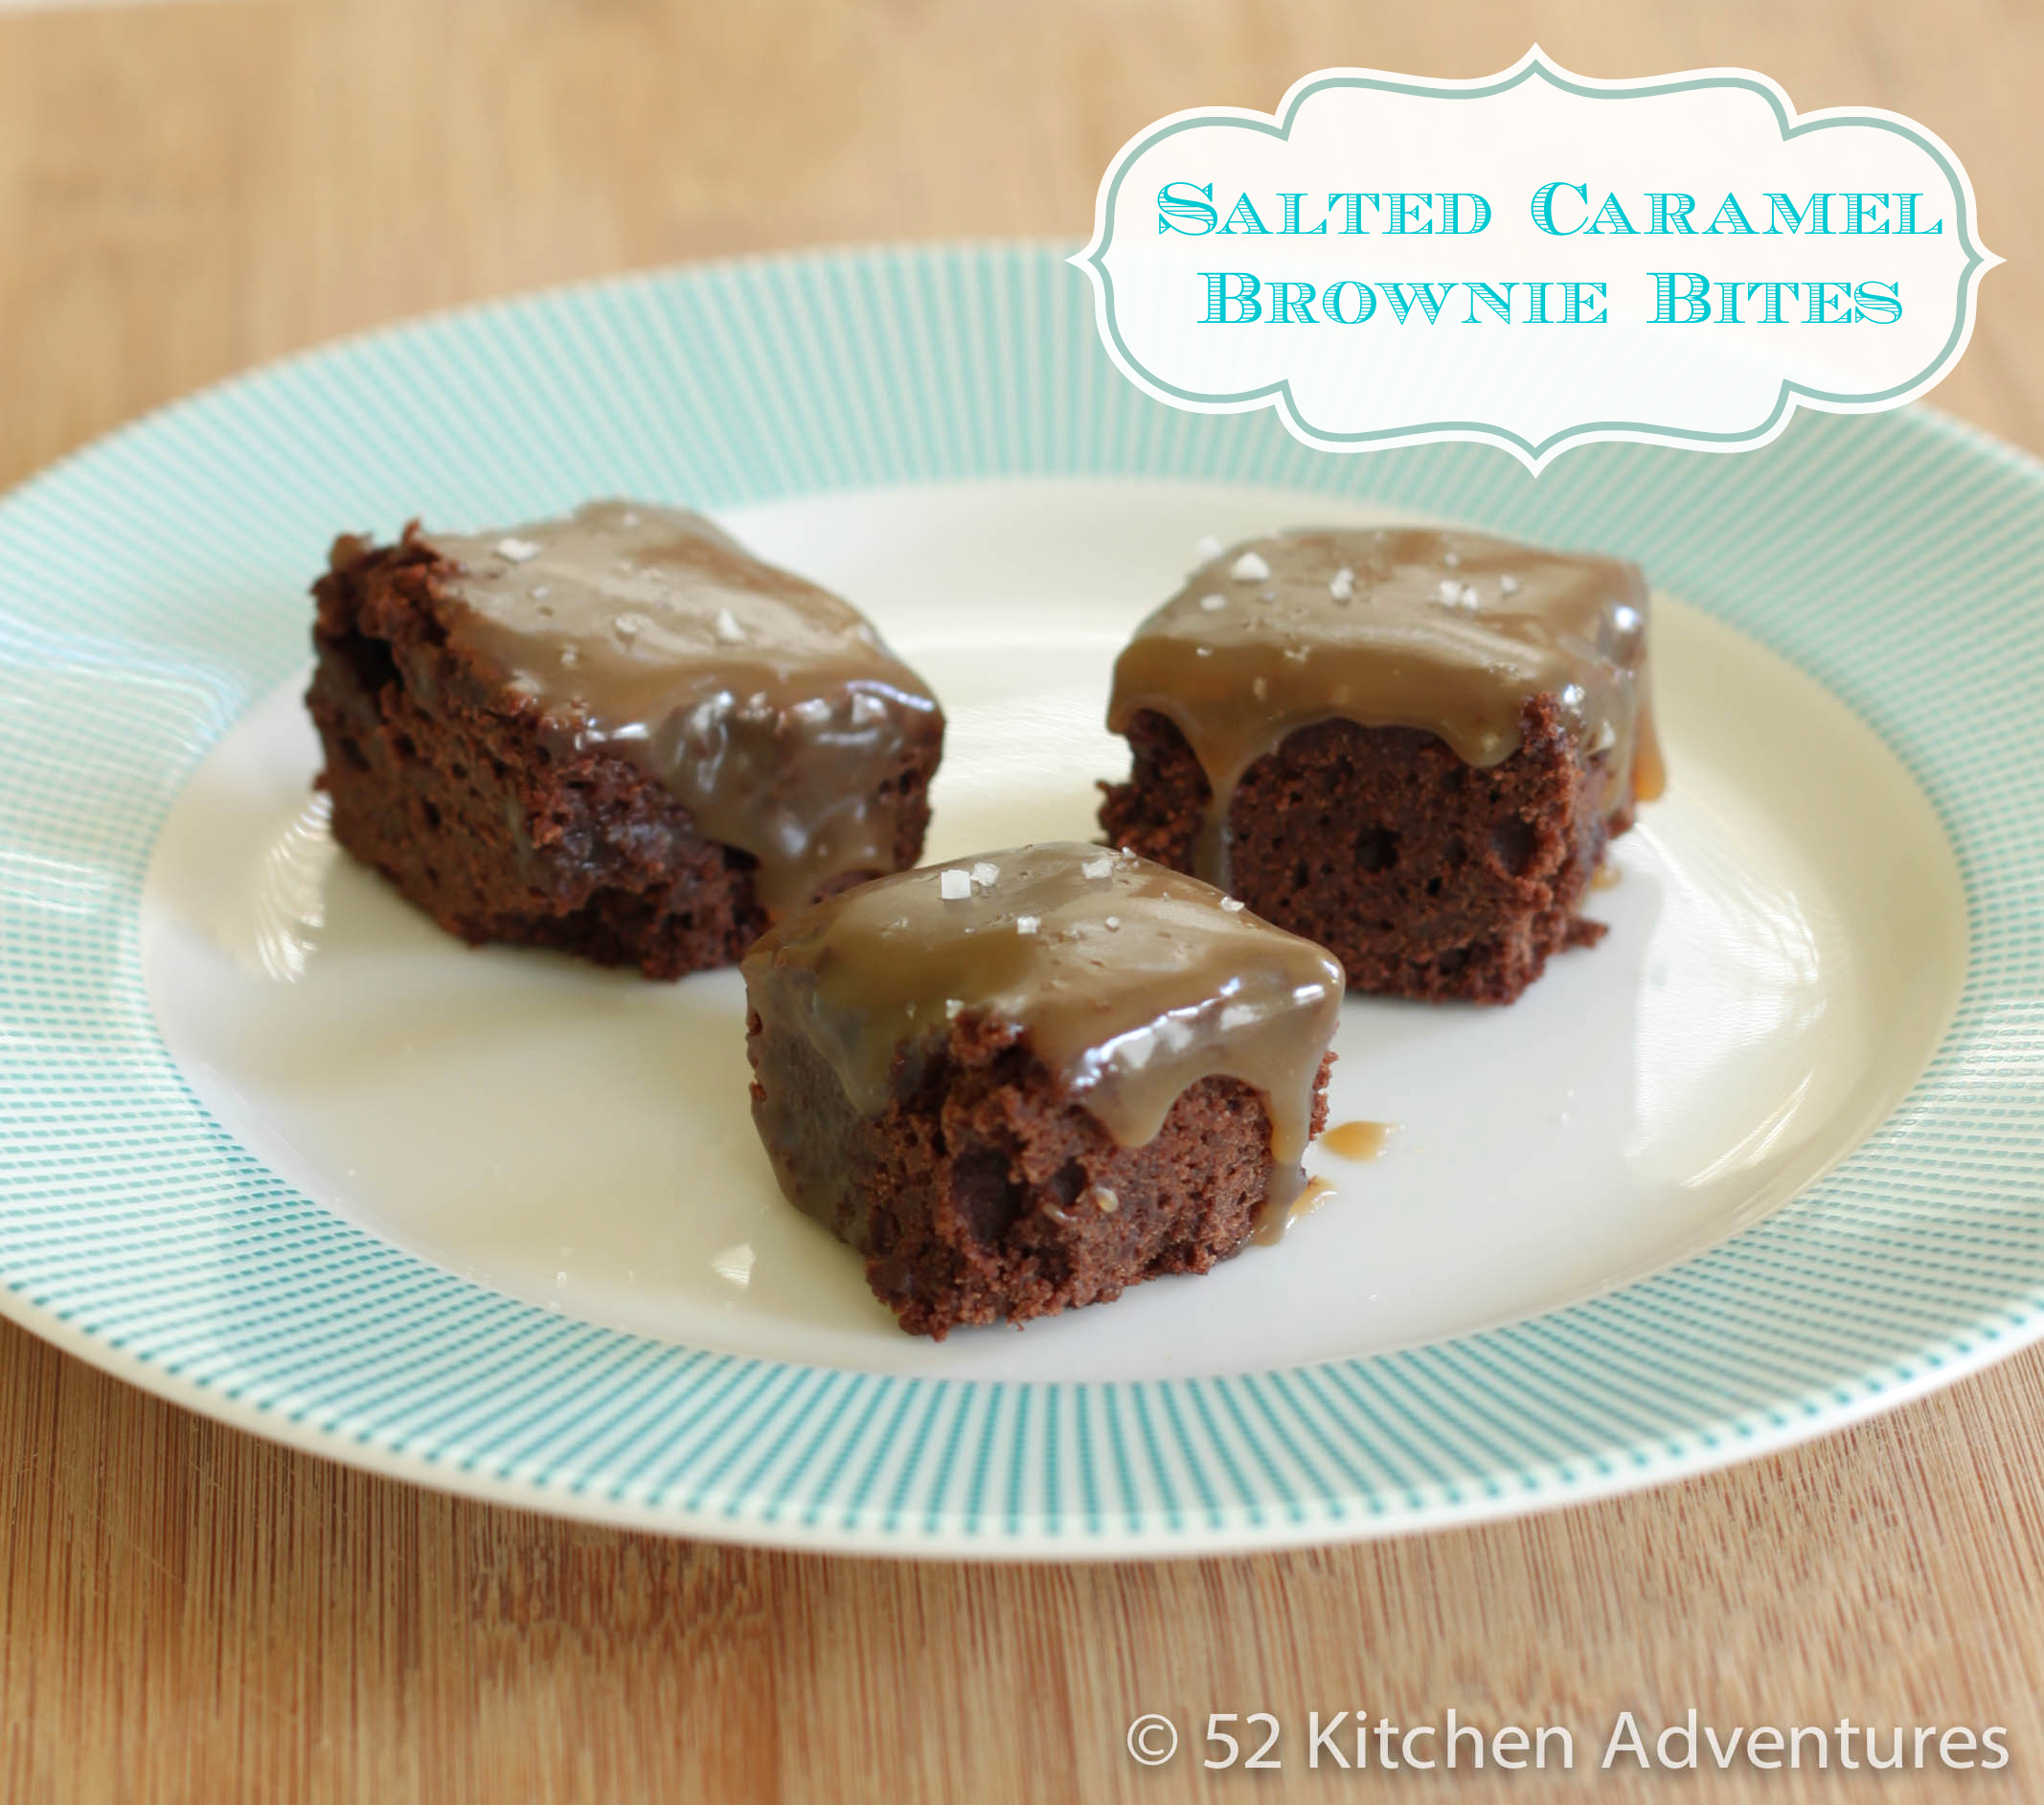 Recipe: Salted caramel brownie bites